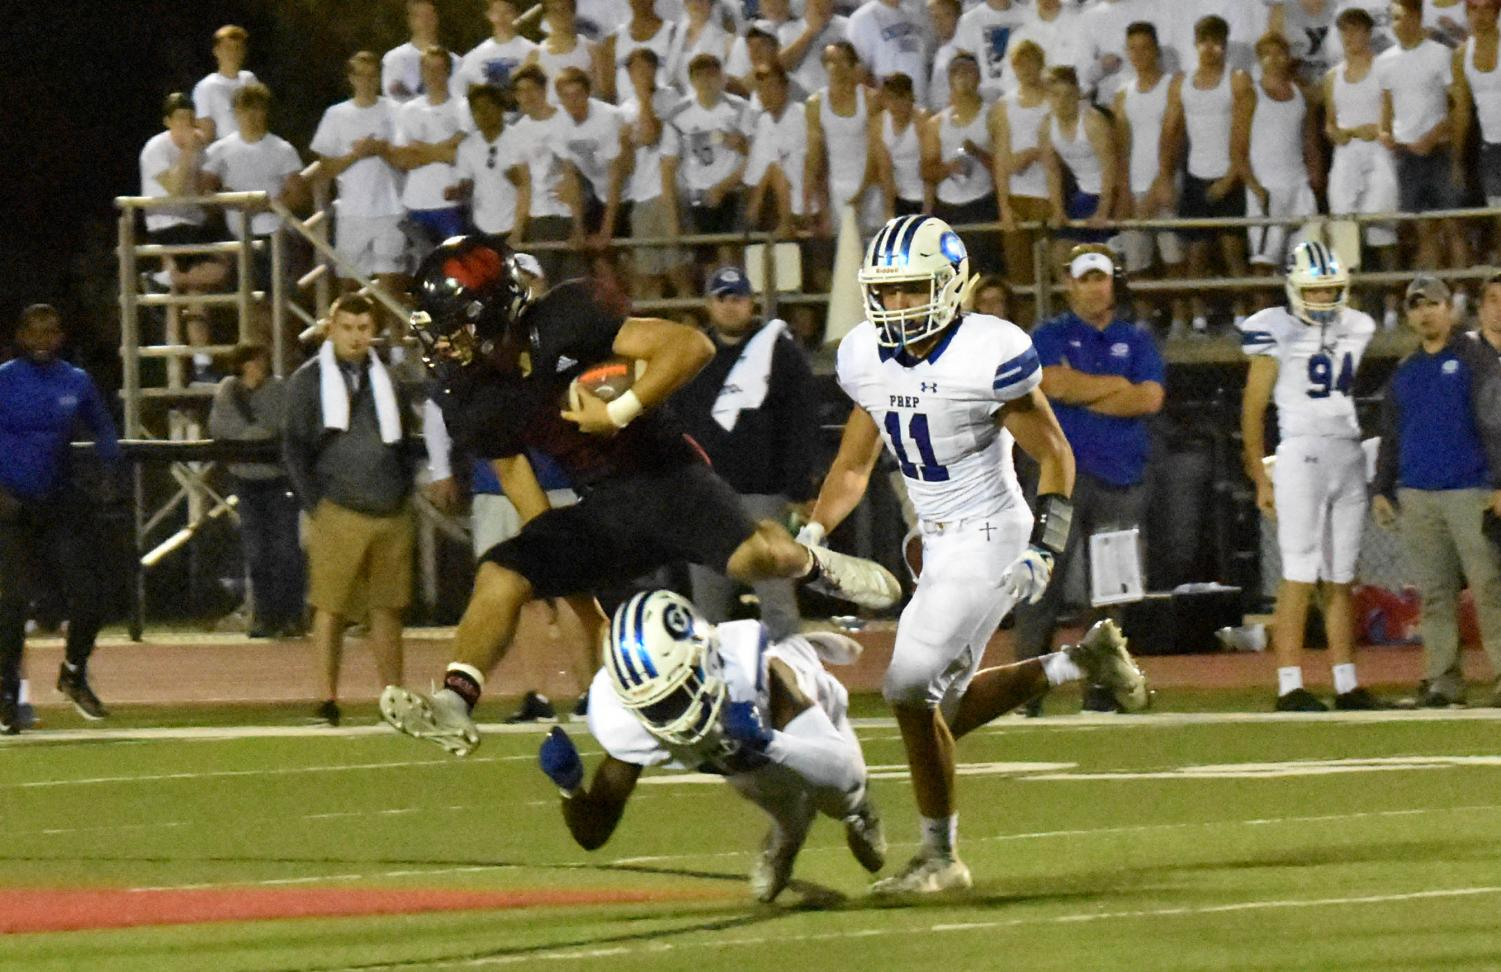 Westside hurdled Creighton Prep on Friday. Nov. 1, by a score of 49-13.